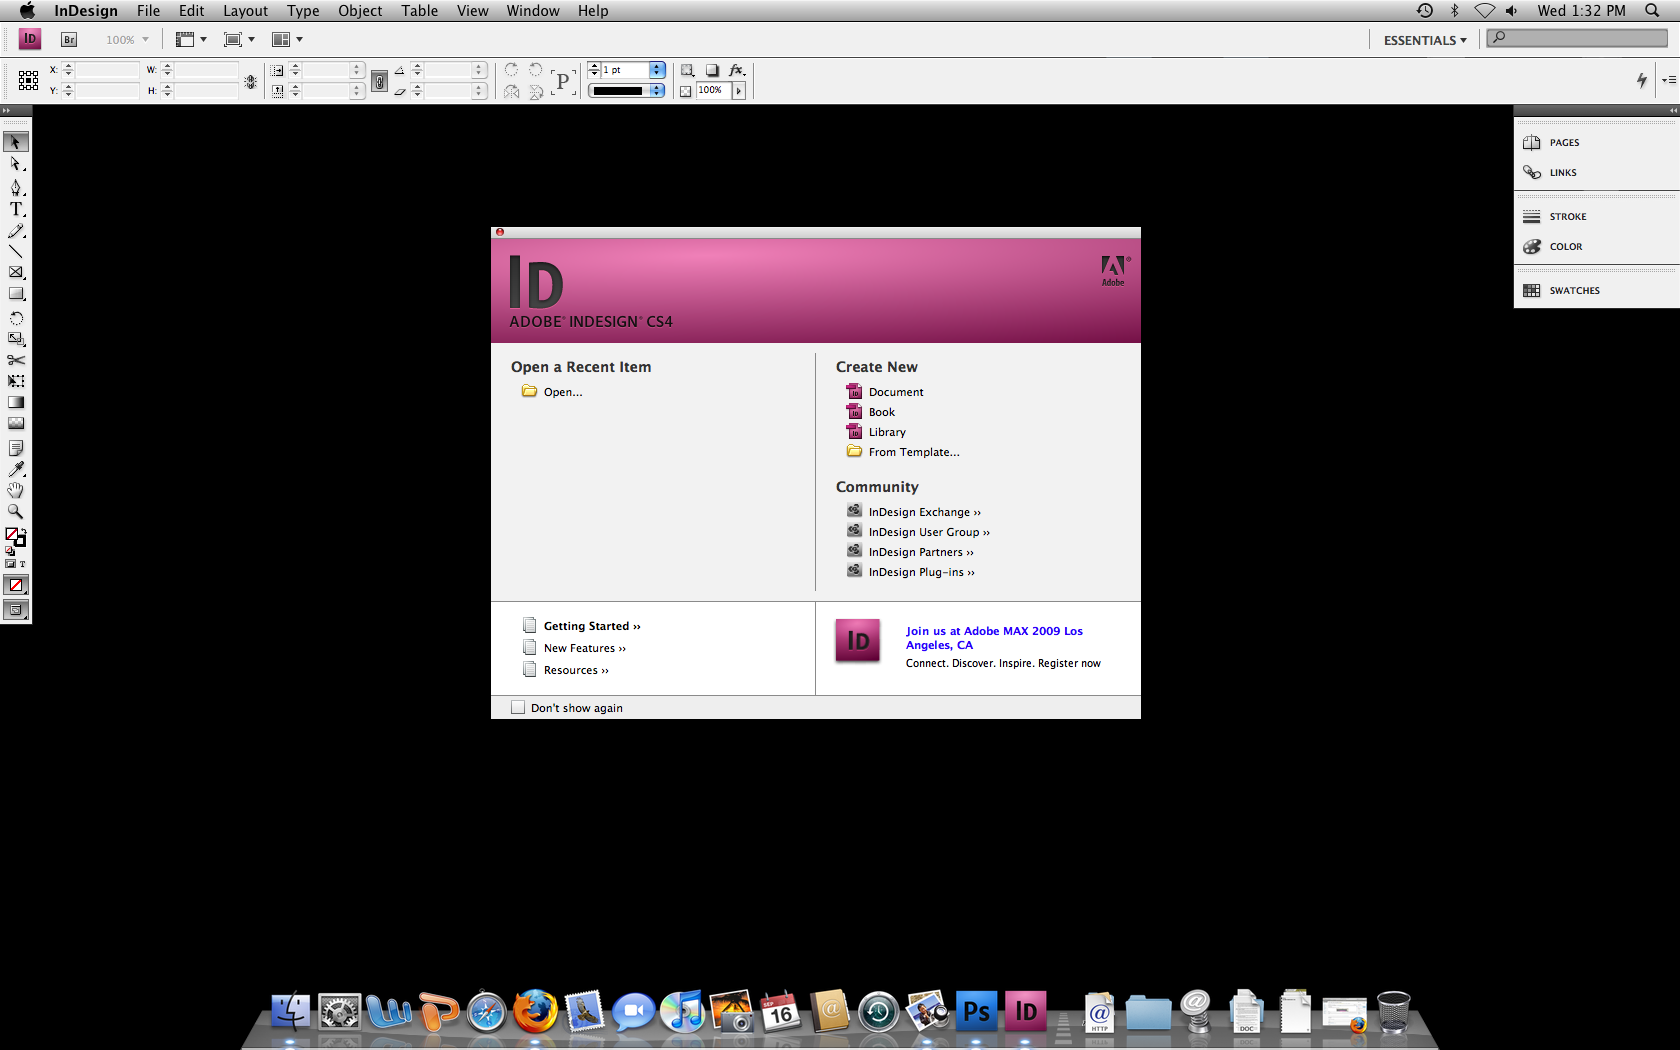 About Adobe InDesign